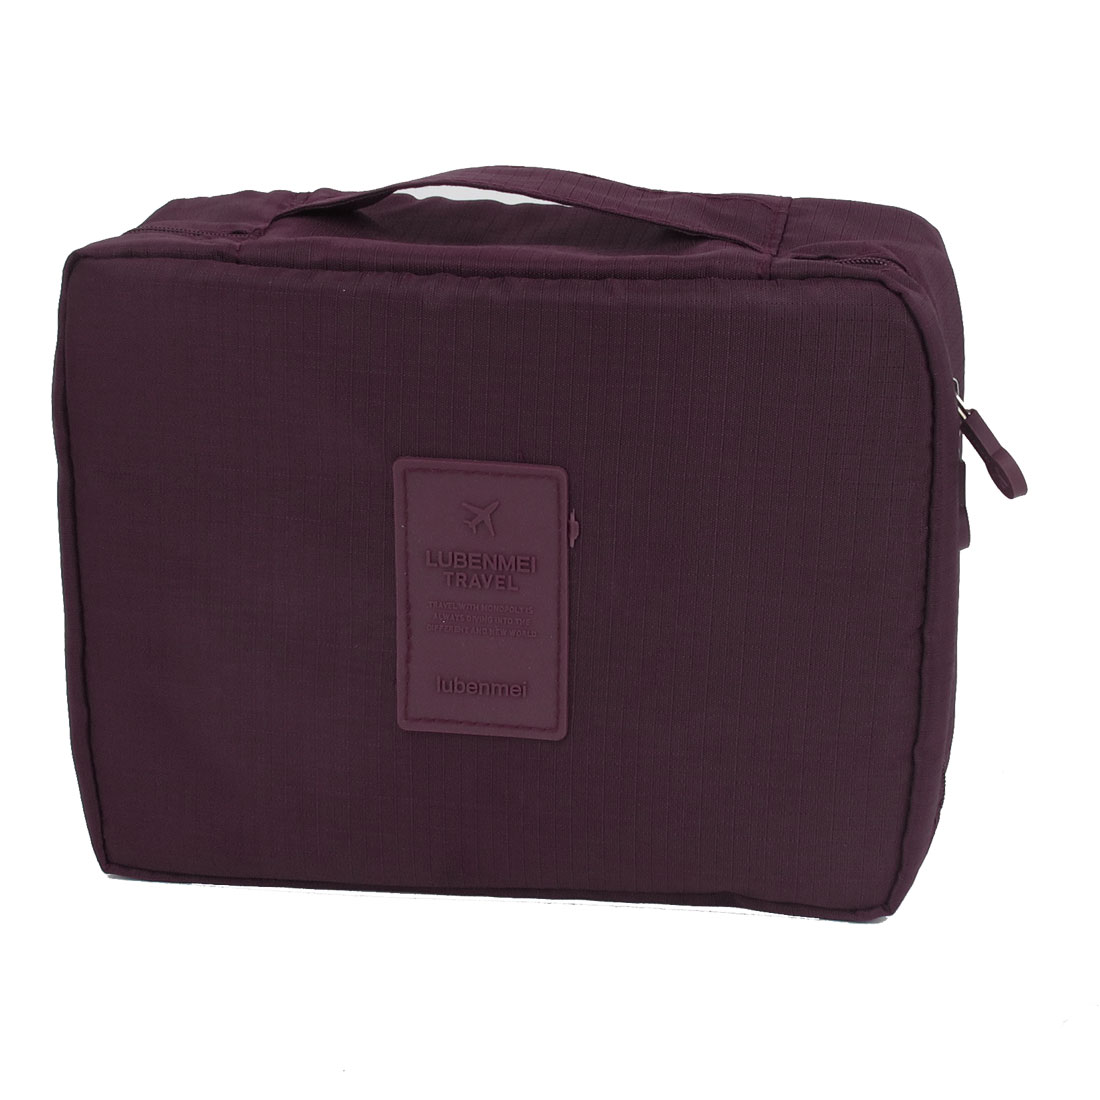 Travel Toiletry Toiletries Cosmetic Shaving Wash Bag Storage Case Box Burgundy